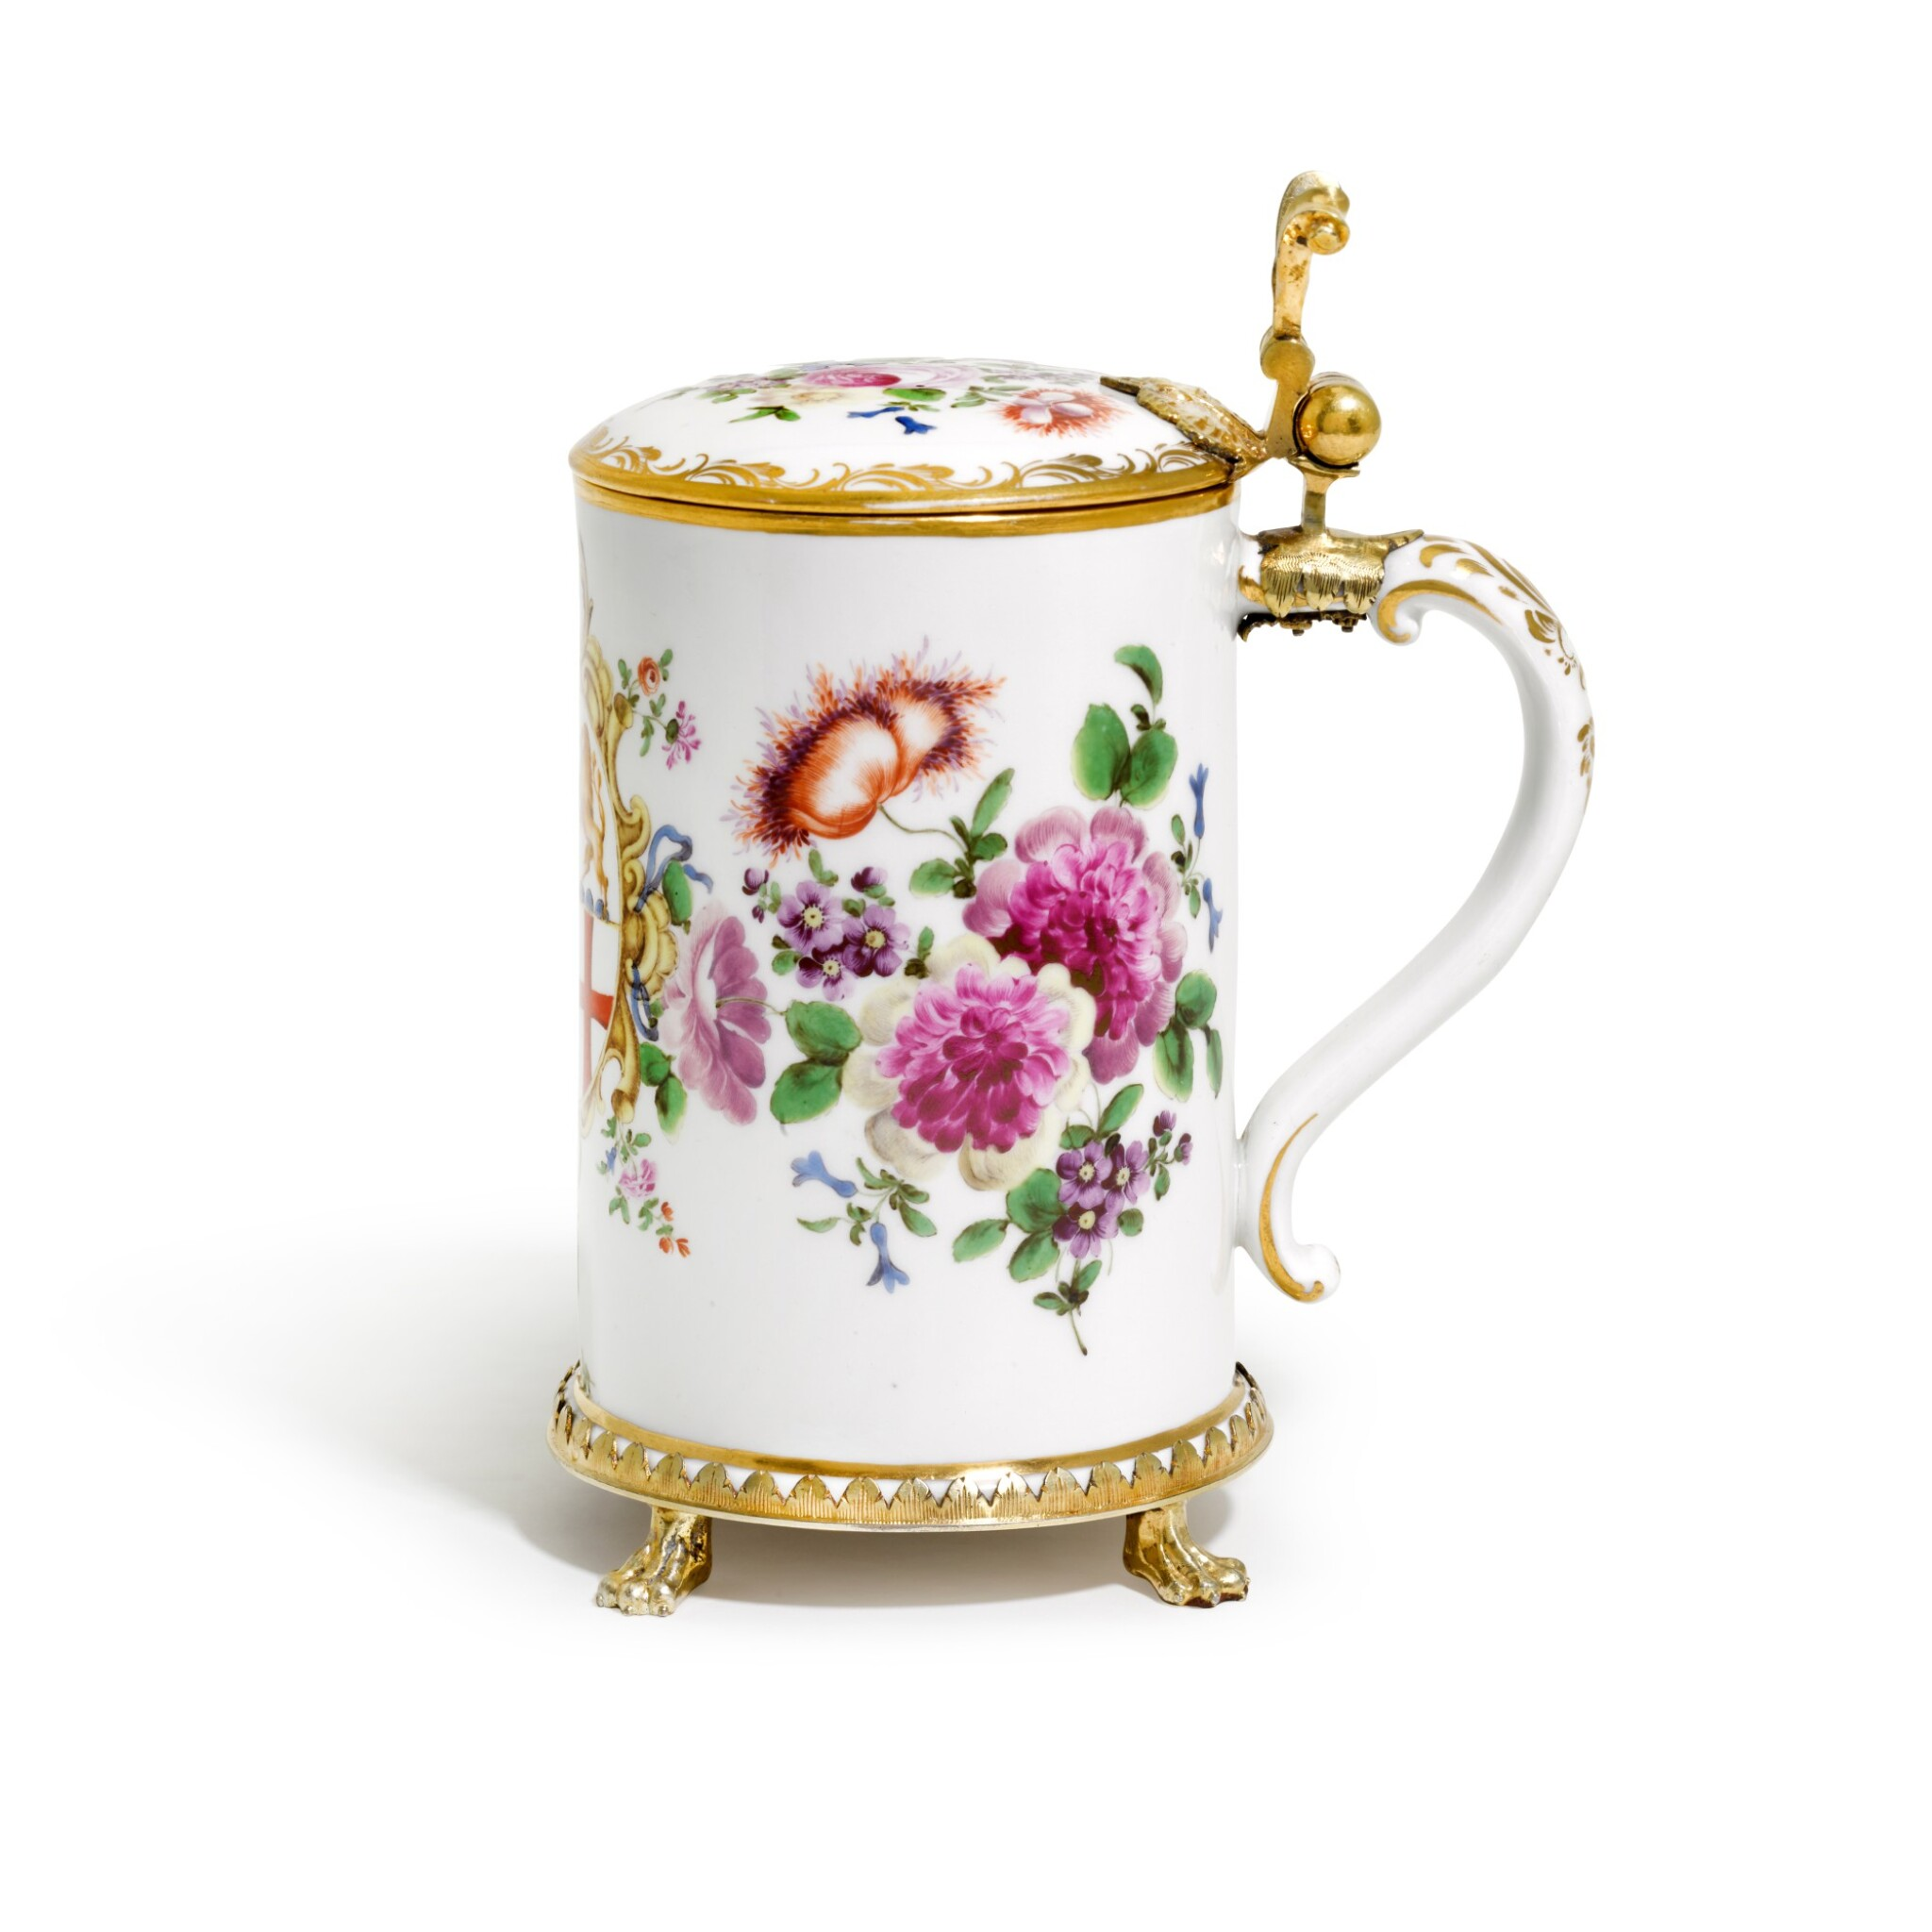 View full screen - View 1 of Lot 15. AN AUSTRIAN PORCELAIN TANKARD AND COVER, WITH GERMAN SILVER GILT MOUNT, MOST PROBABLY JOHANN BAPTISTE SEITZ, CONSTANCE, CIRCA 1760.